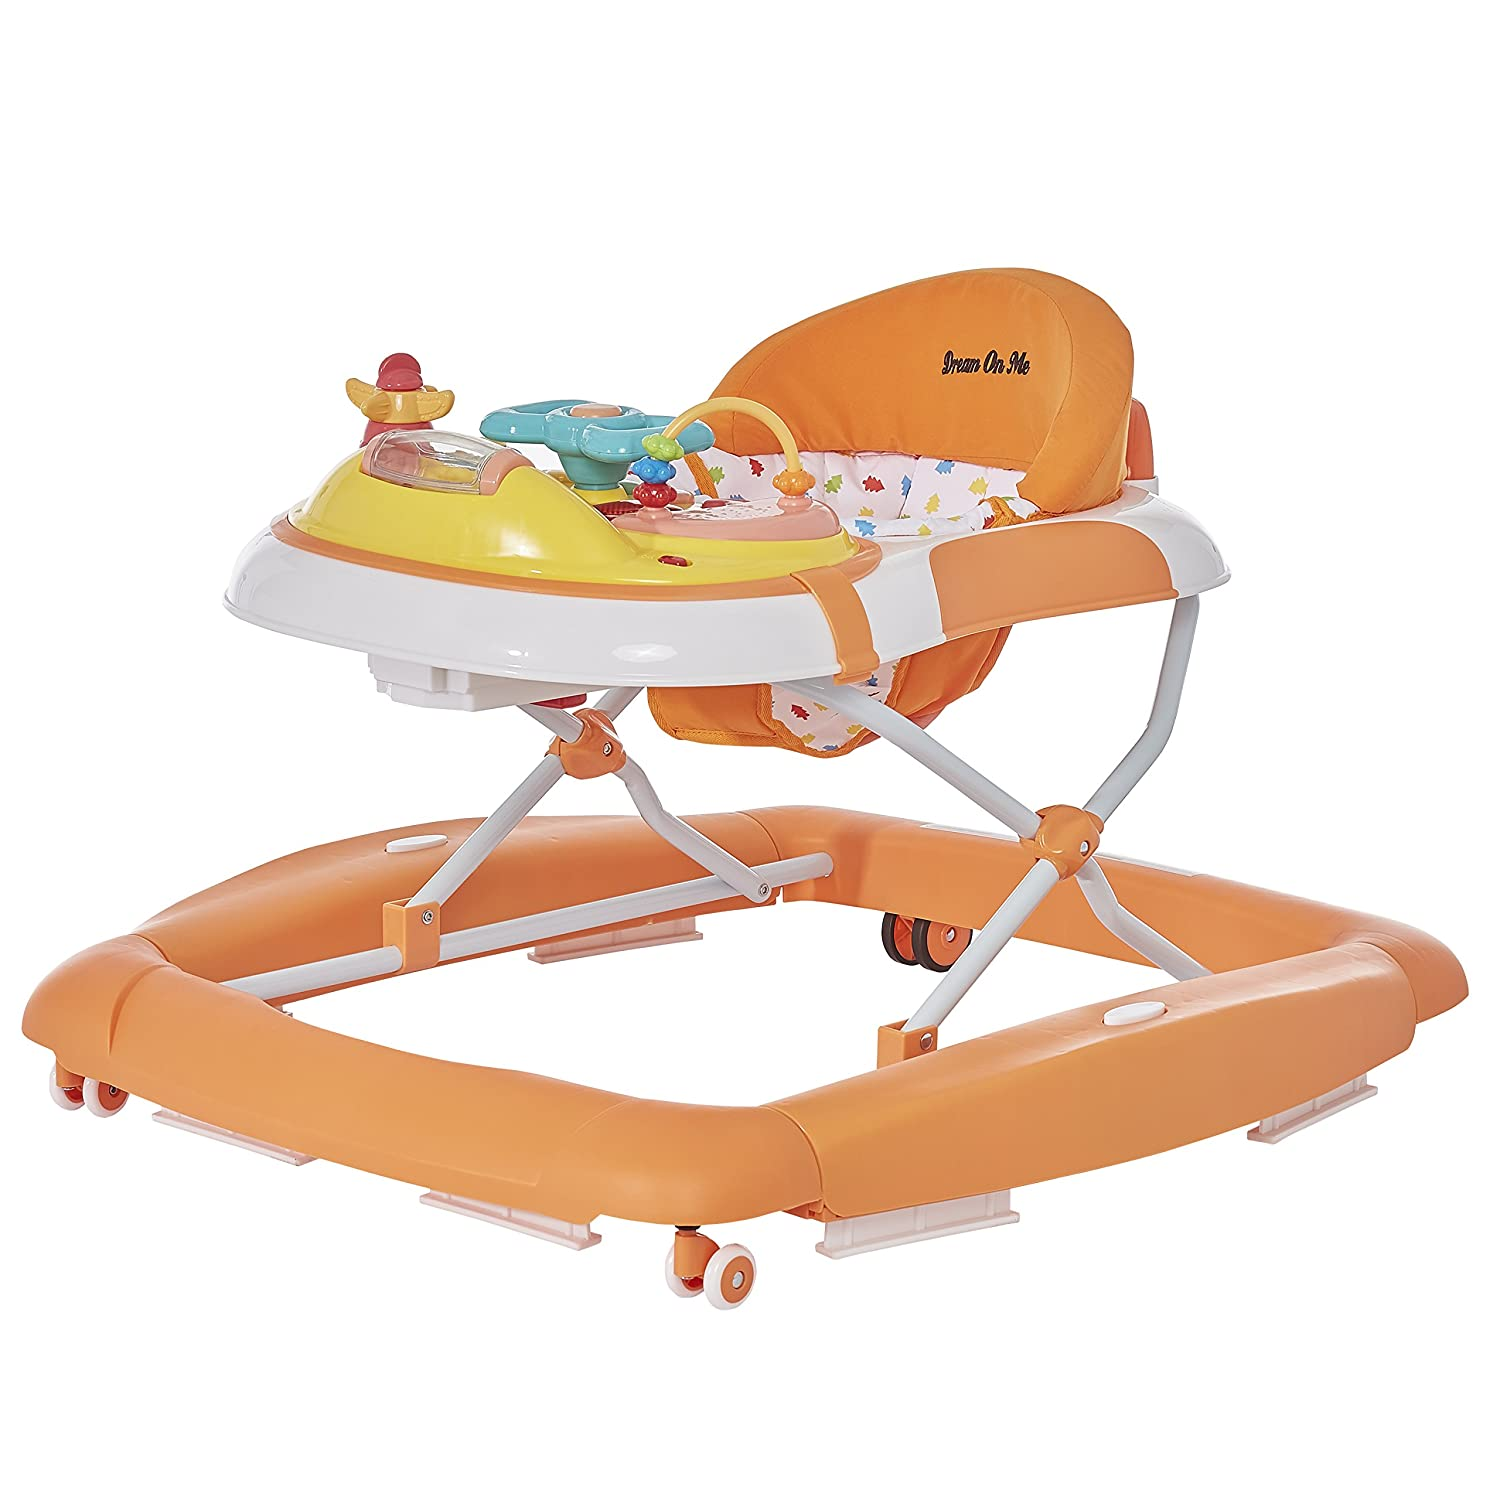 Dream On Me 2 in 1 Crossover Musical Walker, Orange/White